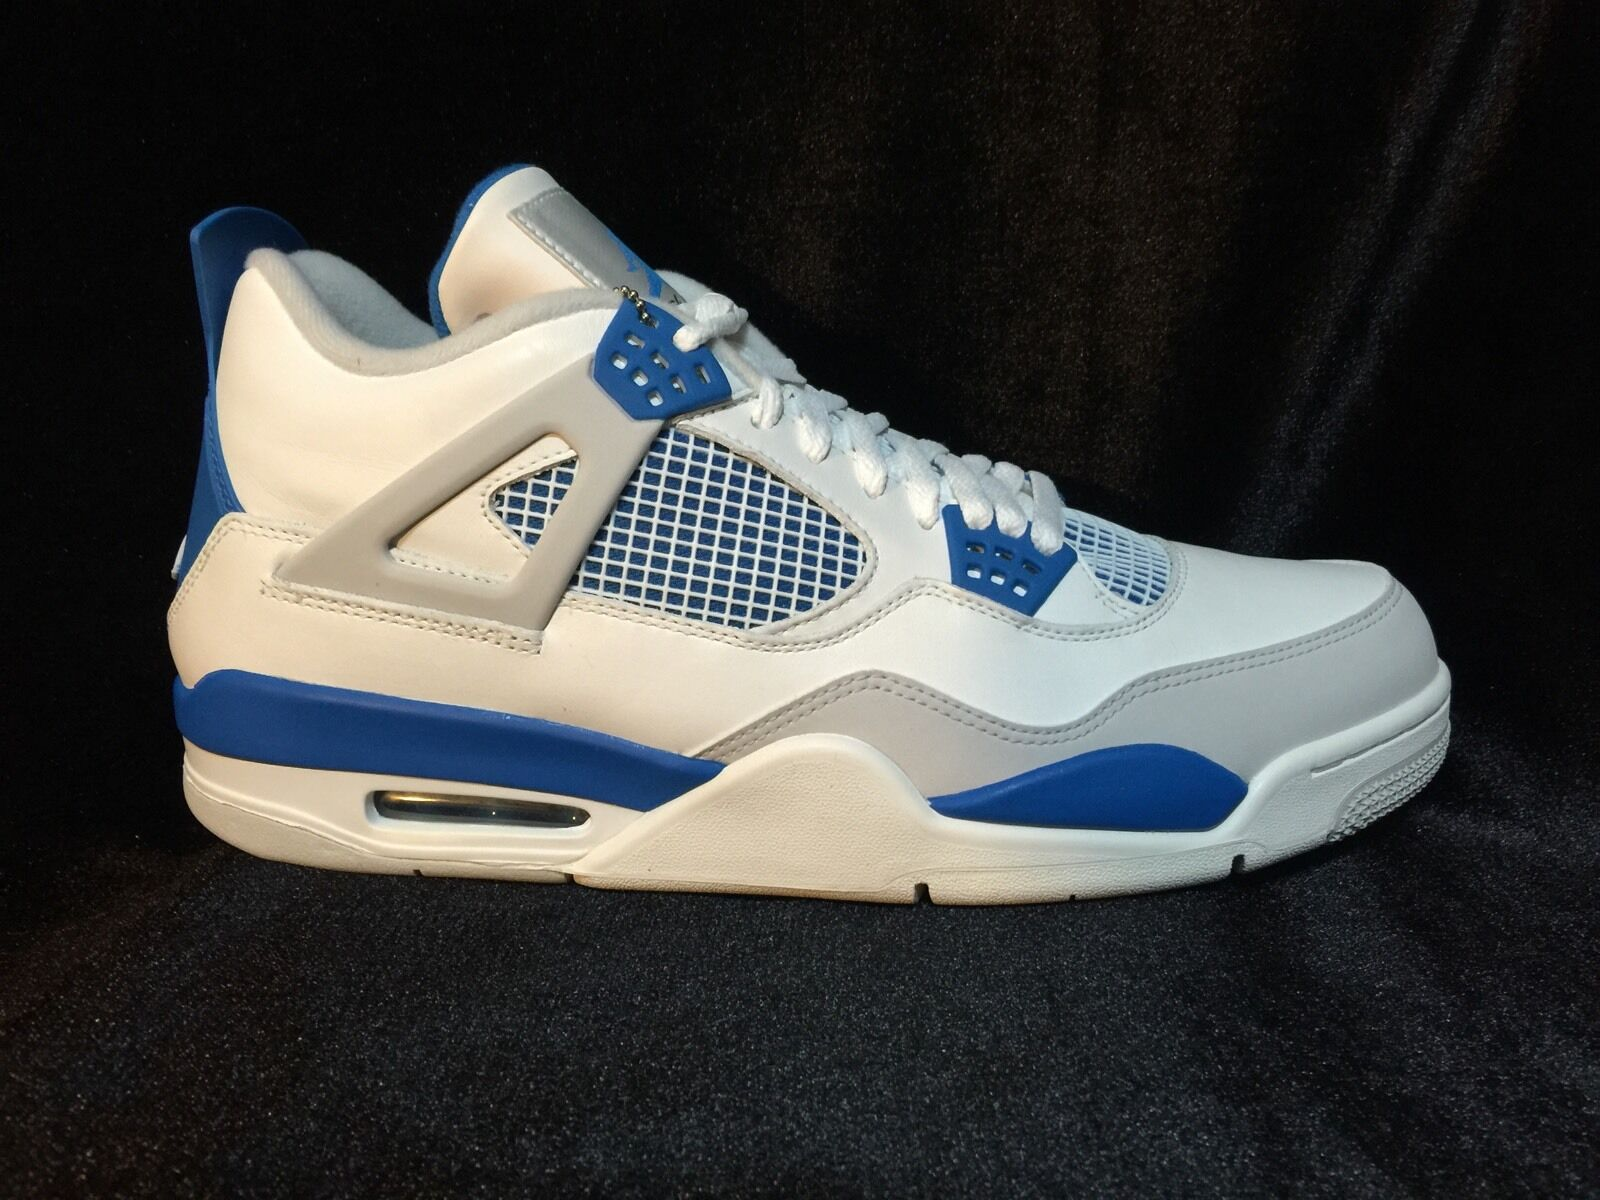 NIKE AIR JORDAN 4 RETRO IV MILITARY BLUE (308497-105)  NEW  Sz13